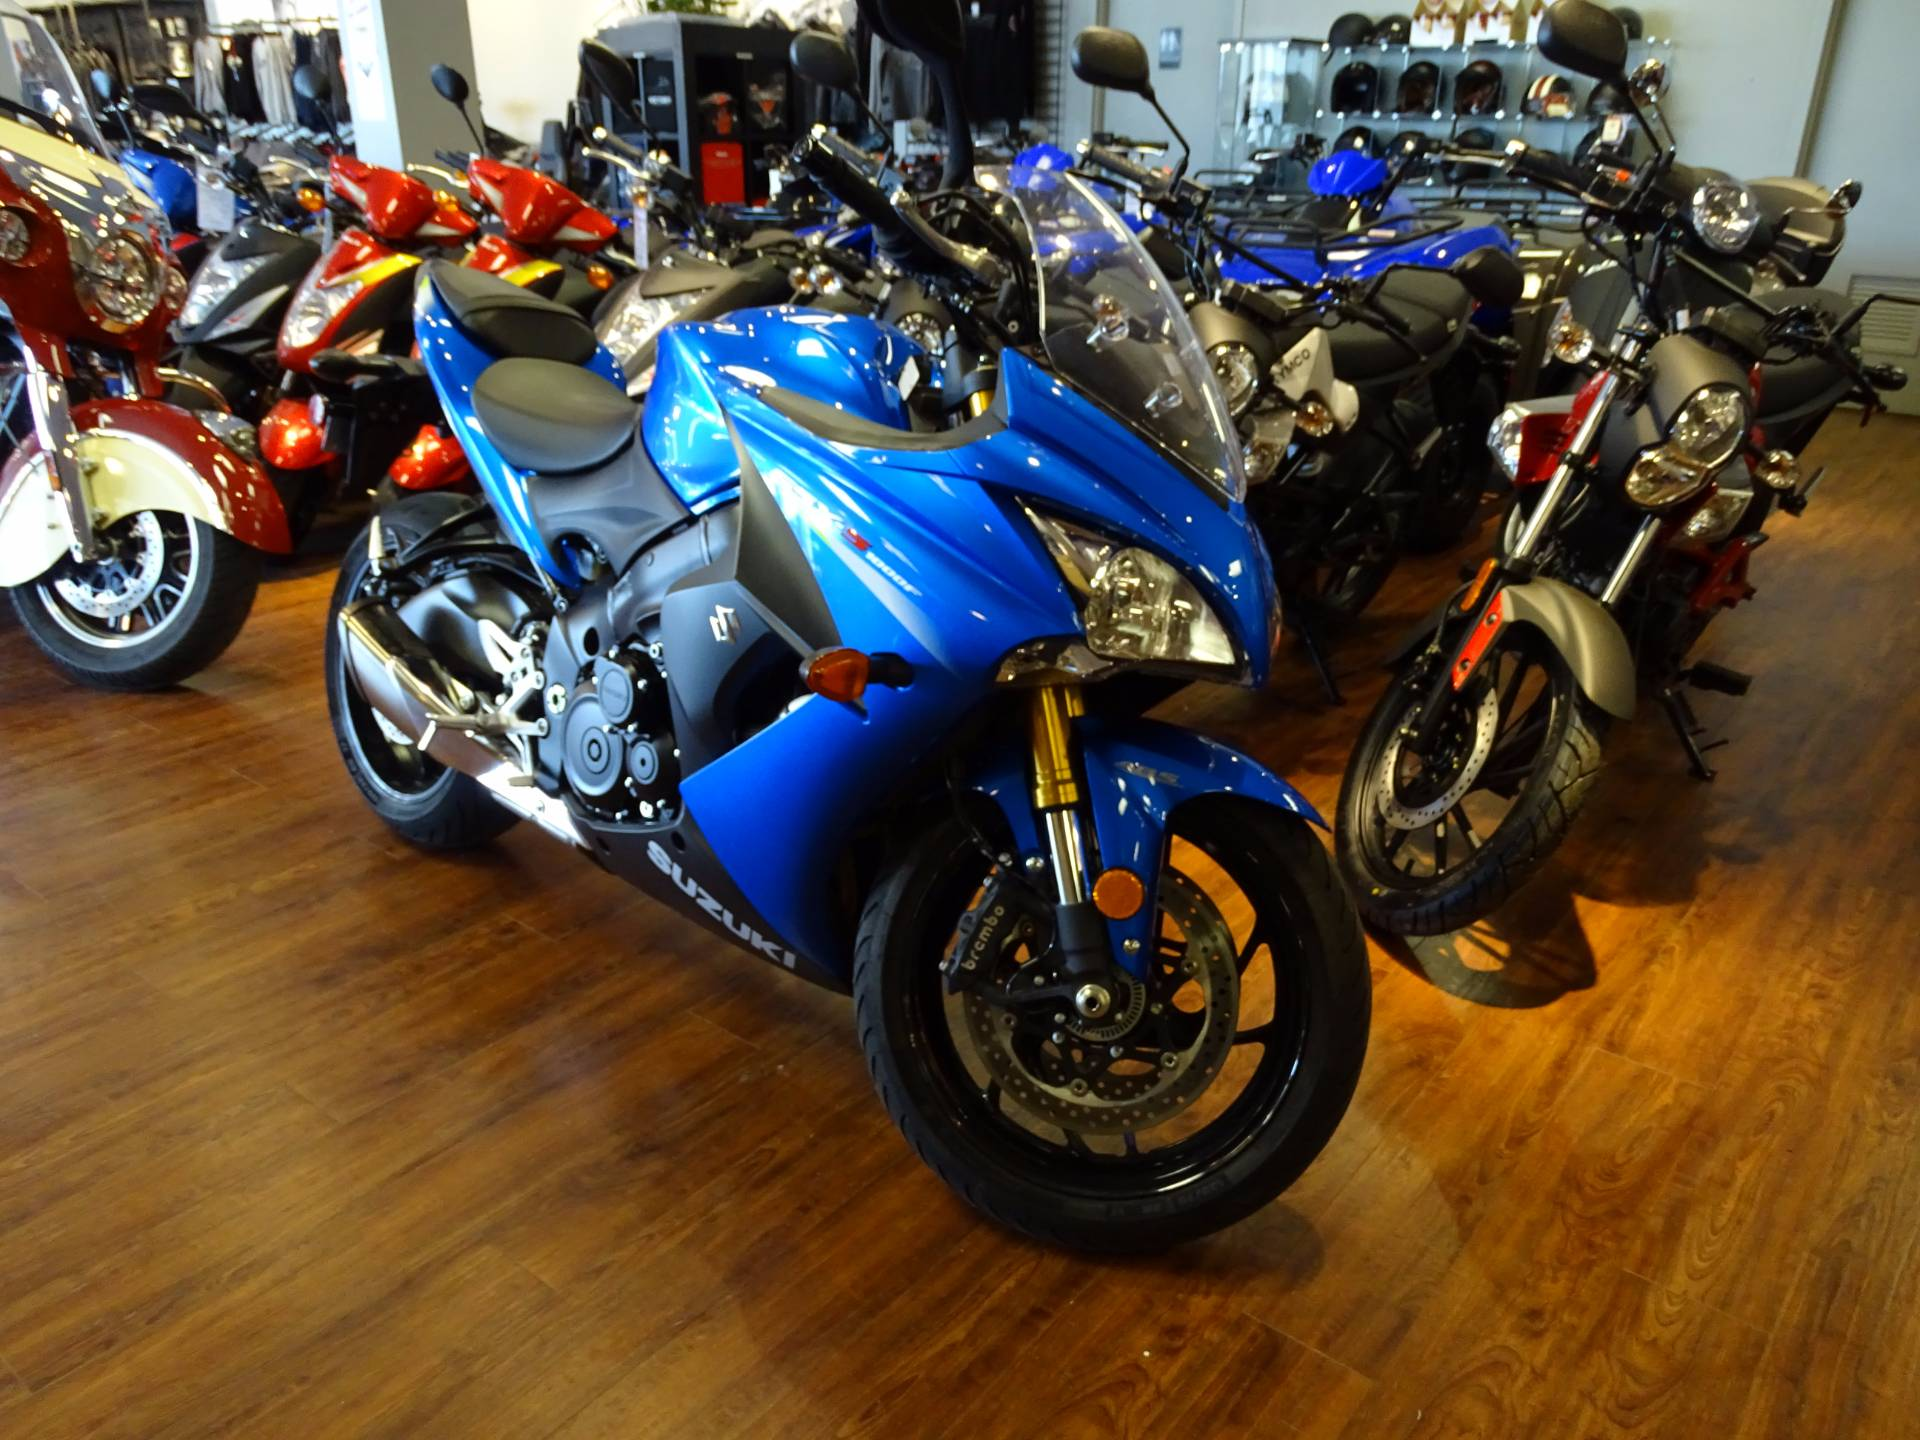 2016 Suzuki GSX-S 1000 in Staten Island, New York